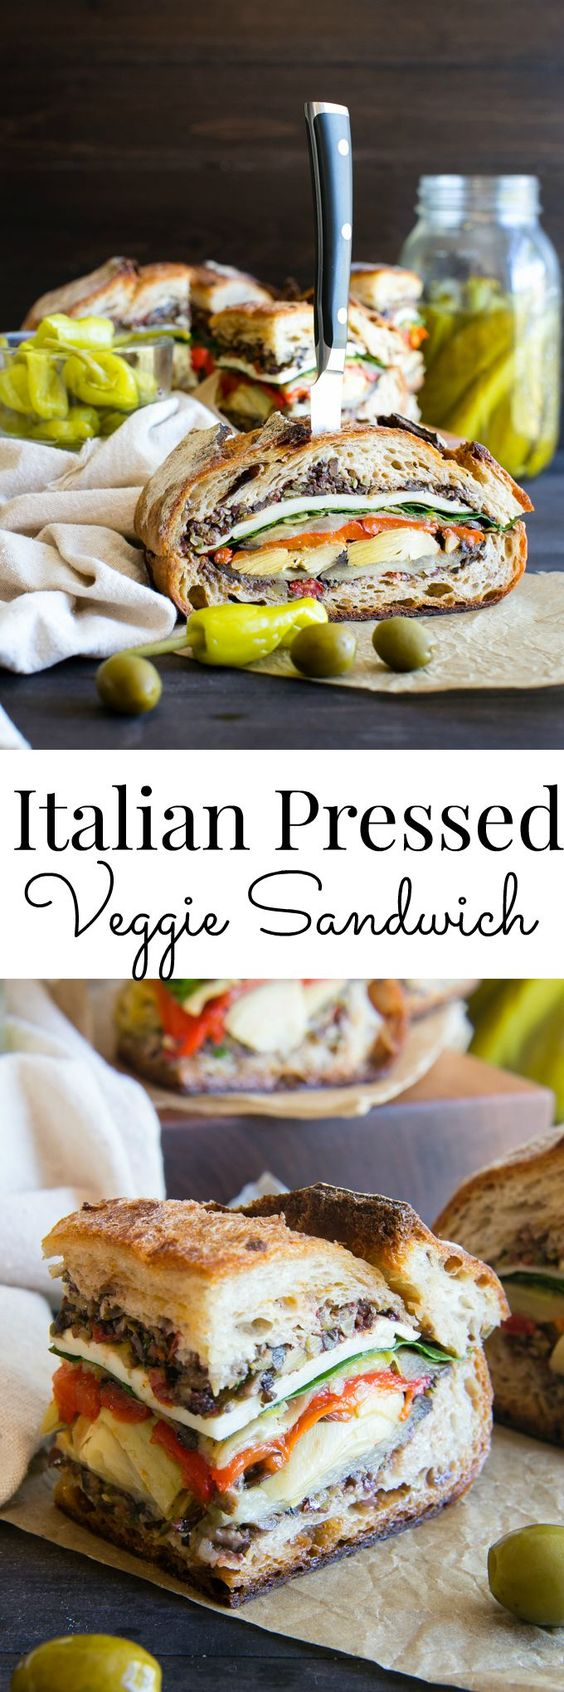 Italian Pressed Sandwiches - Italian Pressed Sandwiches make for a great appetizer this Memorial Day. Serve up these delicious sandwiches as sliders for any party occasion.